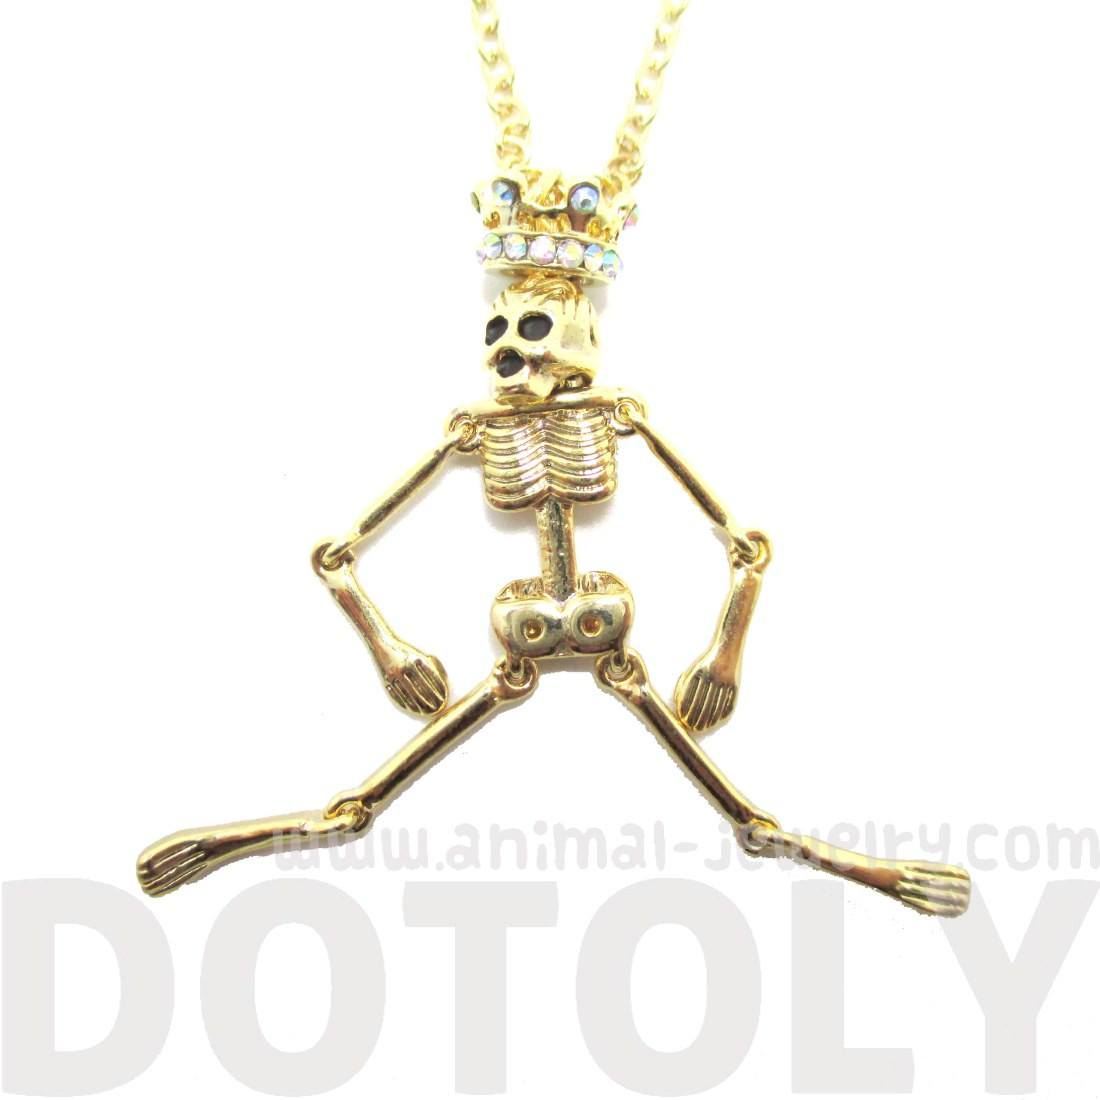 Human Skeleton Bones Shaped Pendant Necklace in Gold